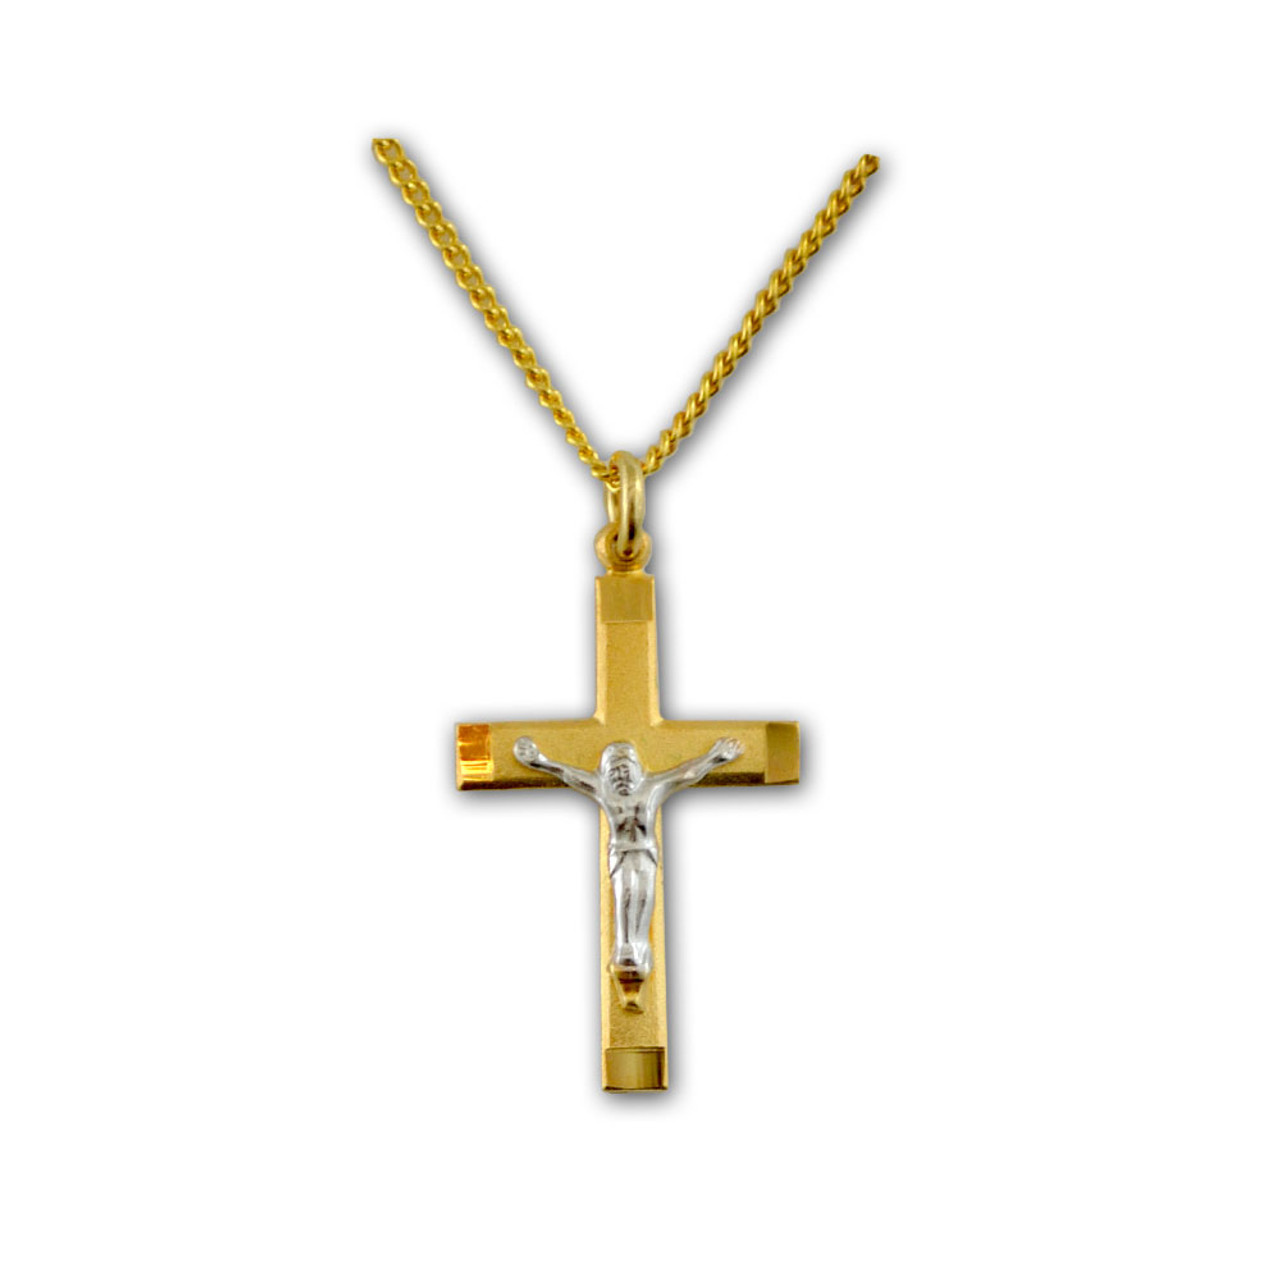 Silver and Gold Crucifix Pendant